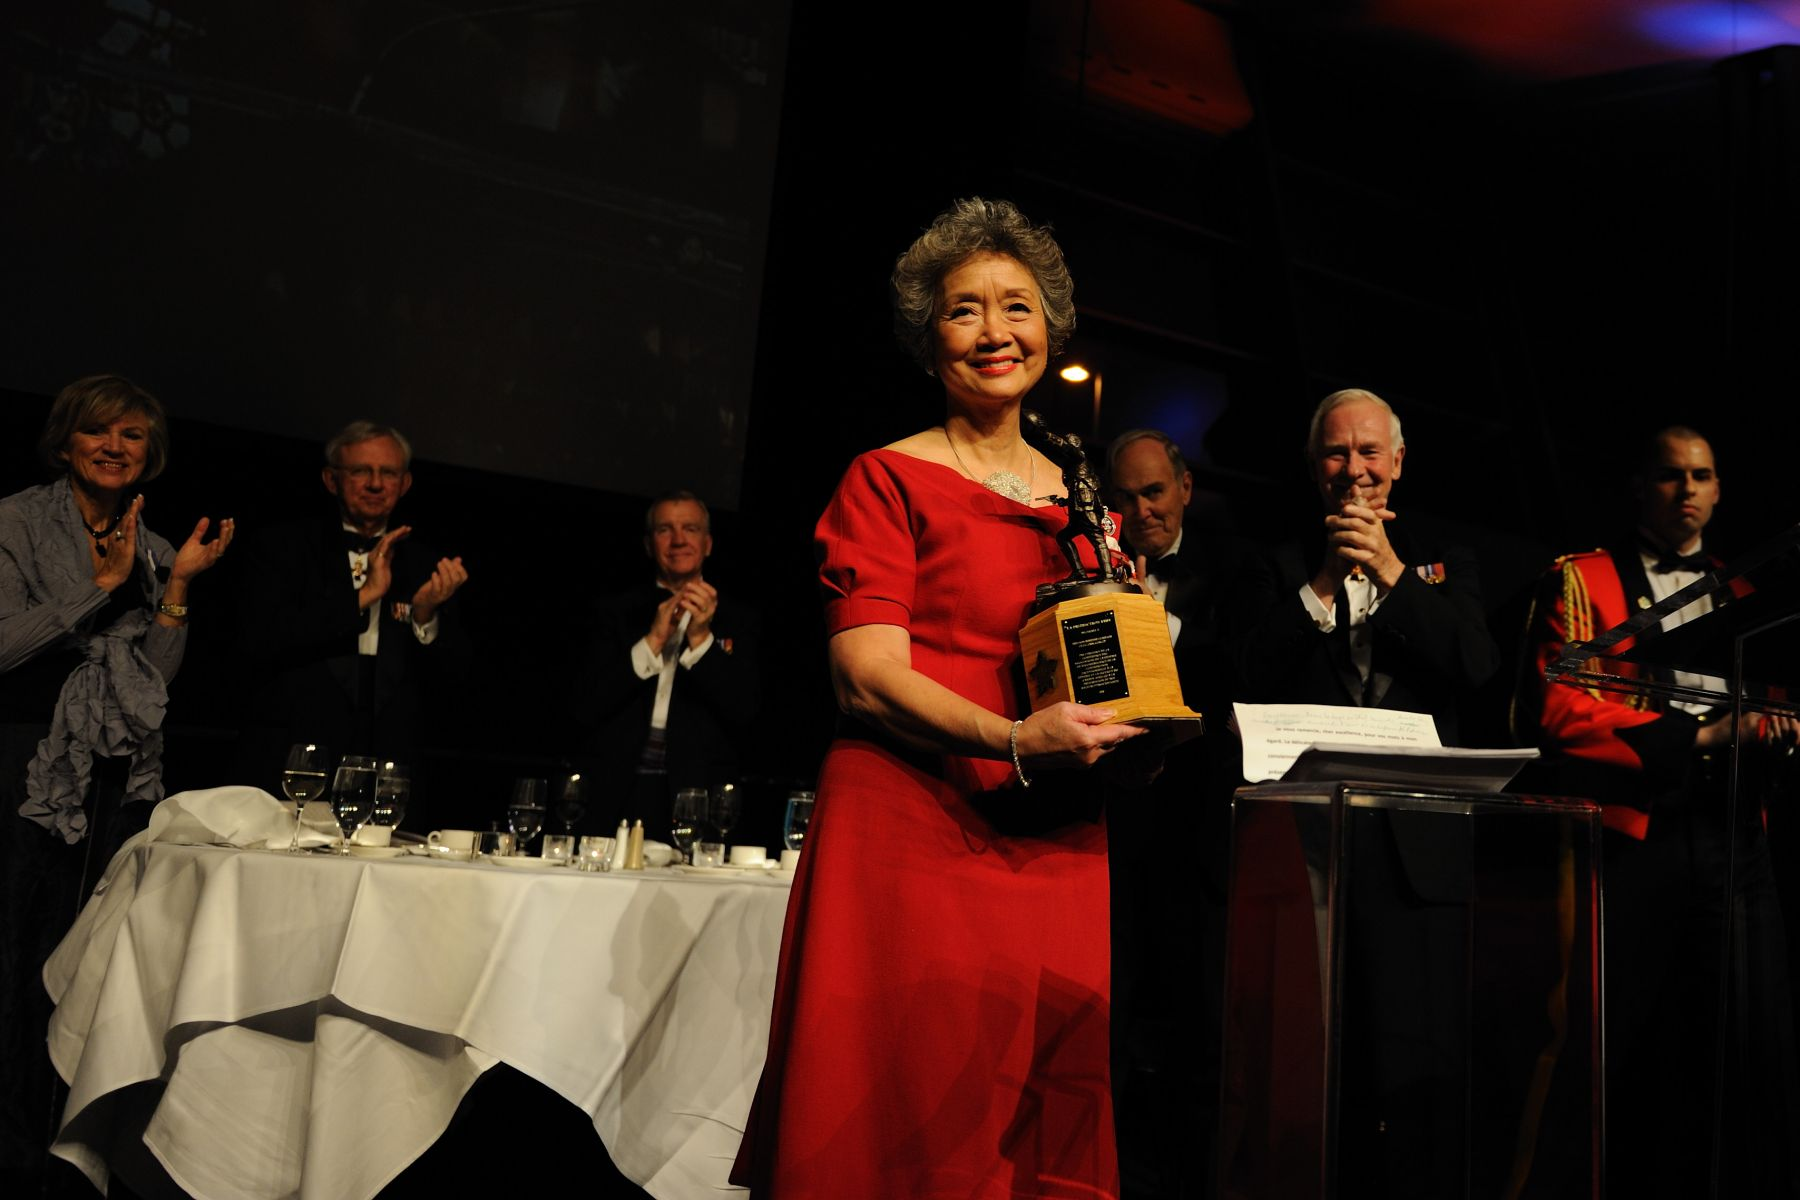 The Governor General presented the 2010 Vimy Award to the Right Honourable Adrienne Clarkson, 26th governor general of Canada, at the Conference of Defence Associations Institute's annual Dinner.